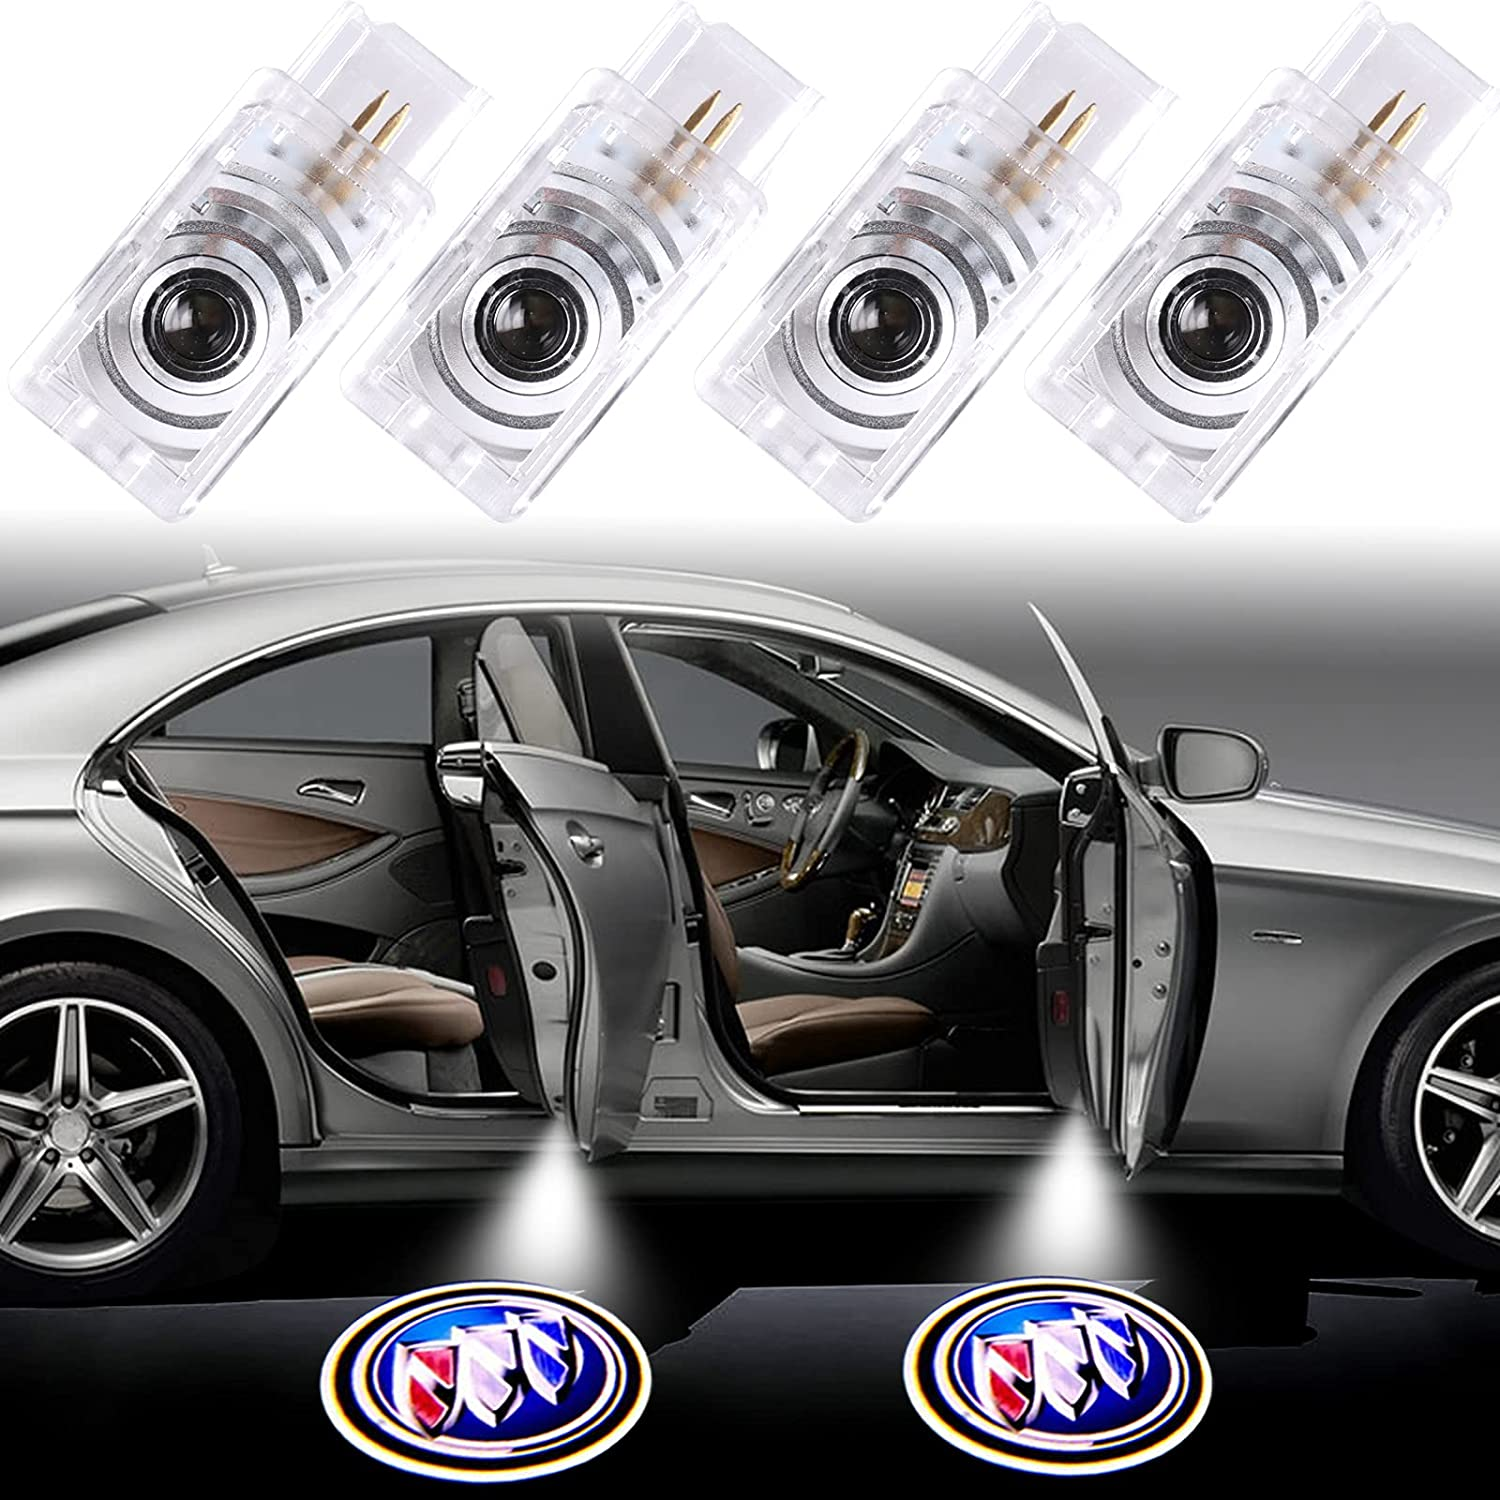 4PCS Genuine for Buick Car Door Lights Logo Light Ghost Shad Max 54% OFF Projector